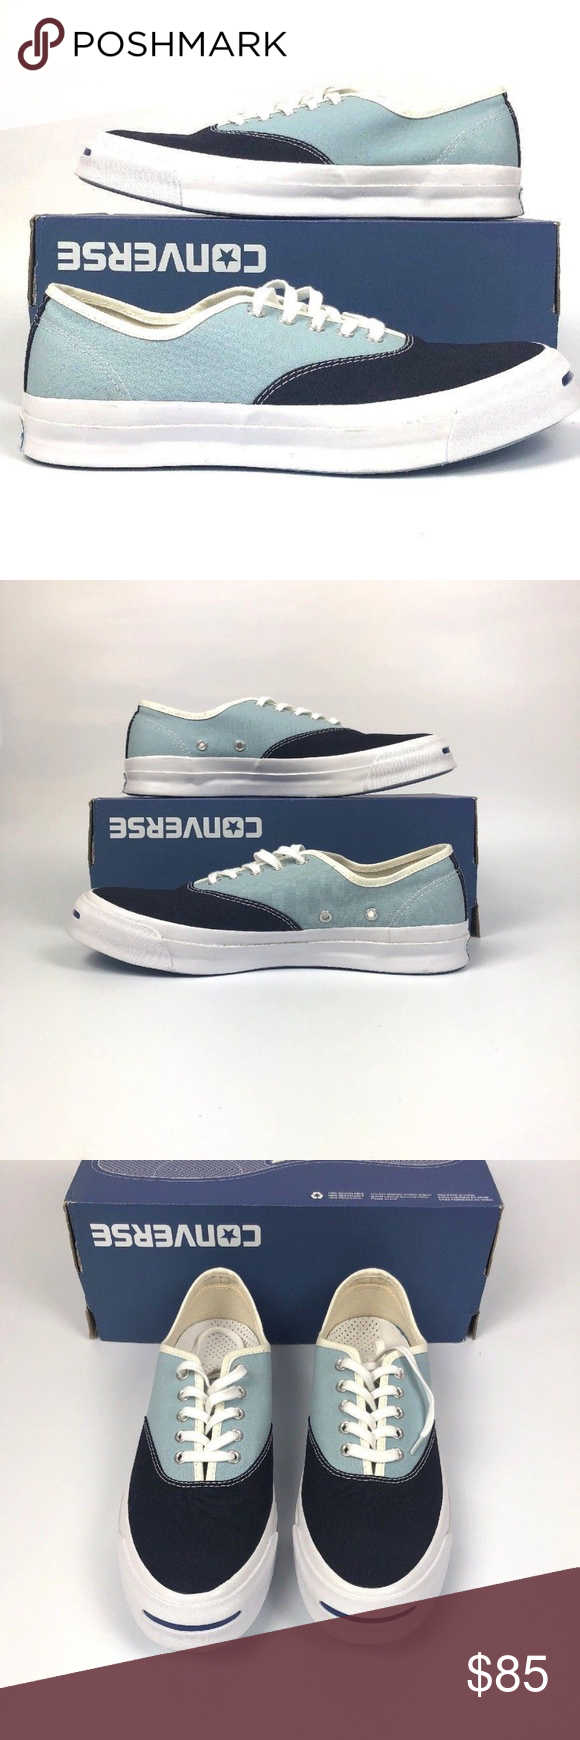 d95457bc74ad3f Converse Jack Purcell Signature CVO Converse Jack Purcell Signature CVO Ox  Inked Ambien Blue White Casual 151455C New With Box No Lid On Box Shipped  Double ...